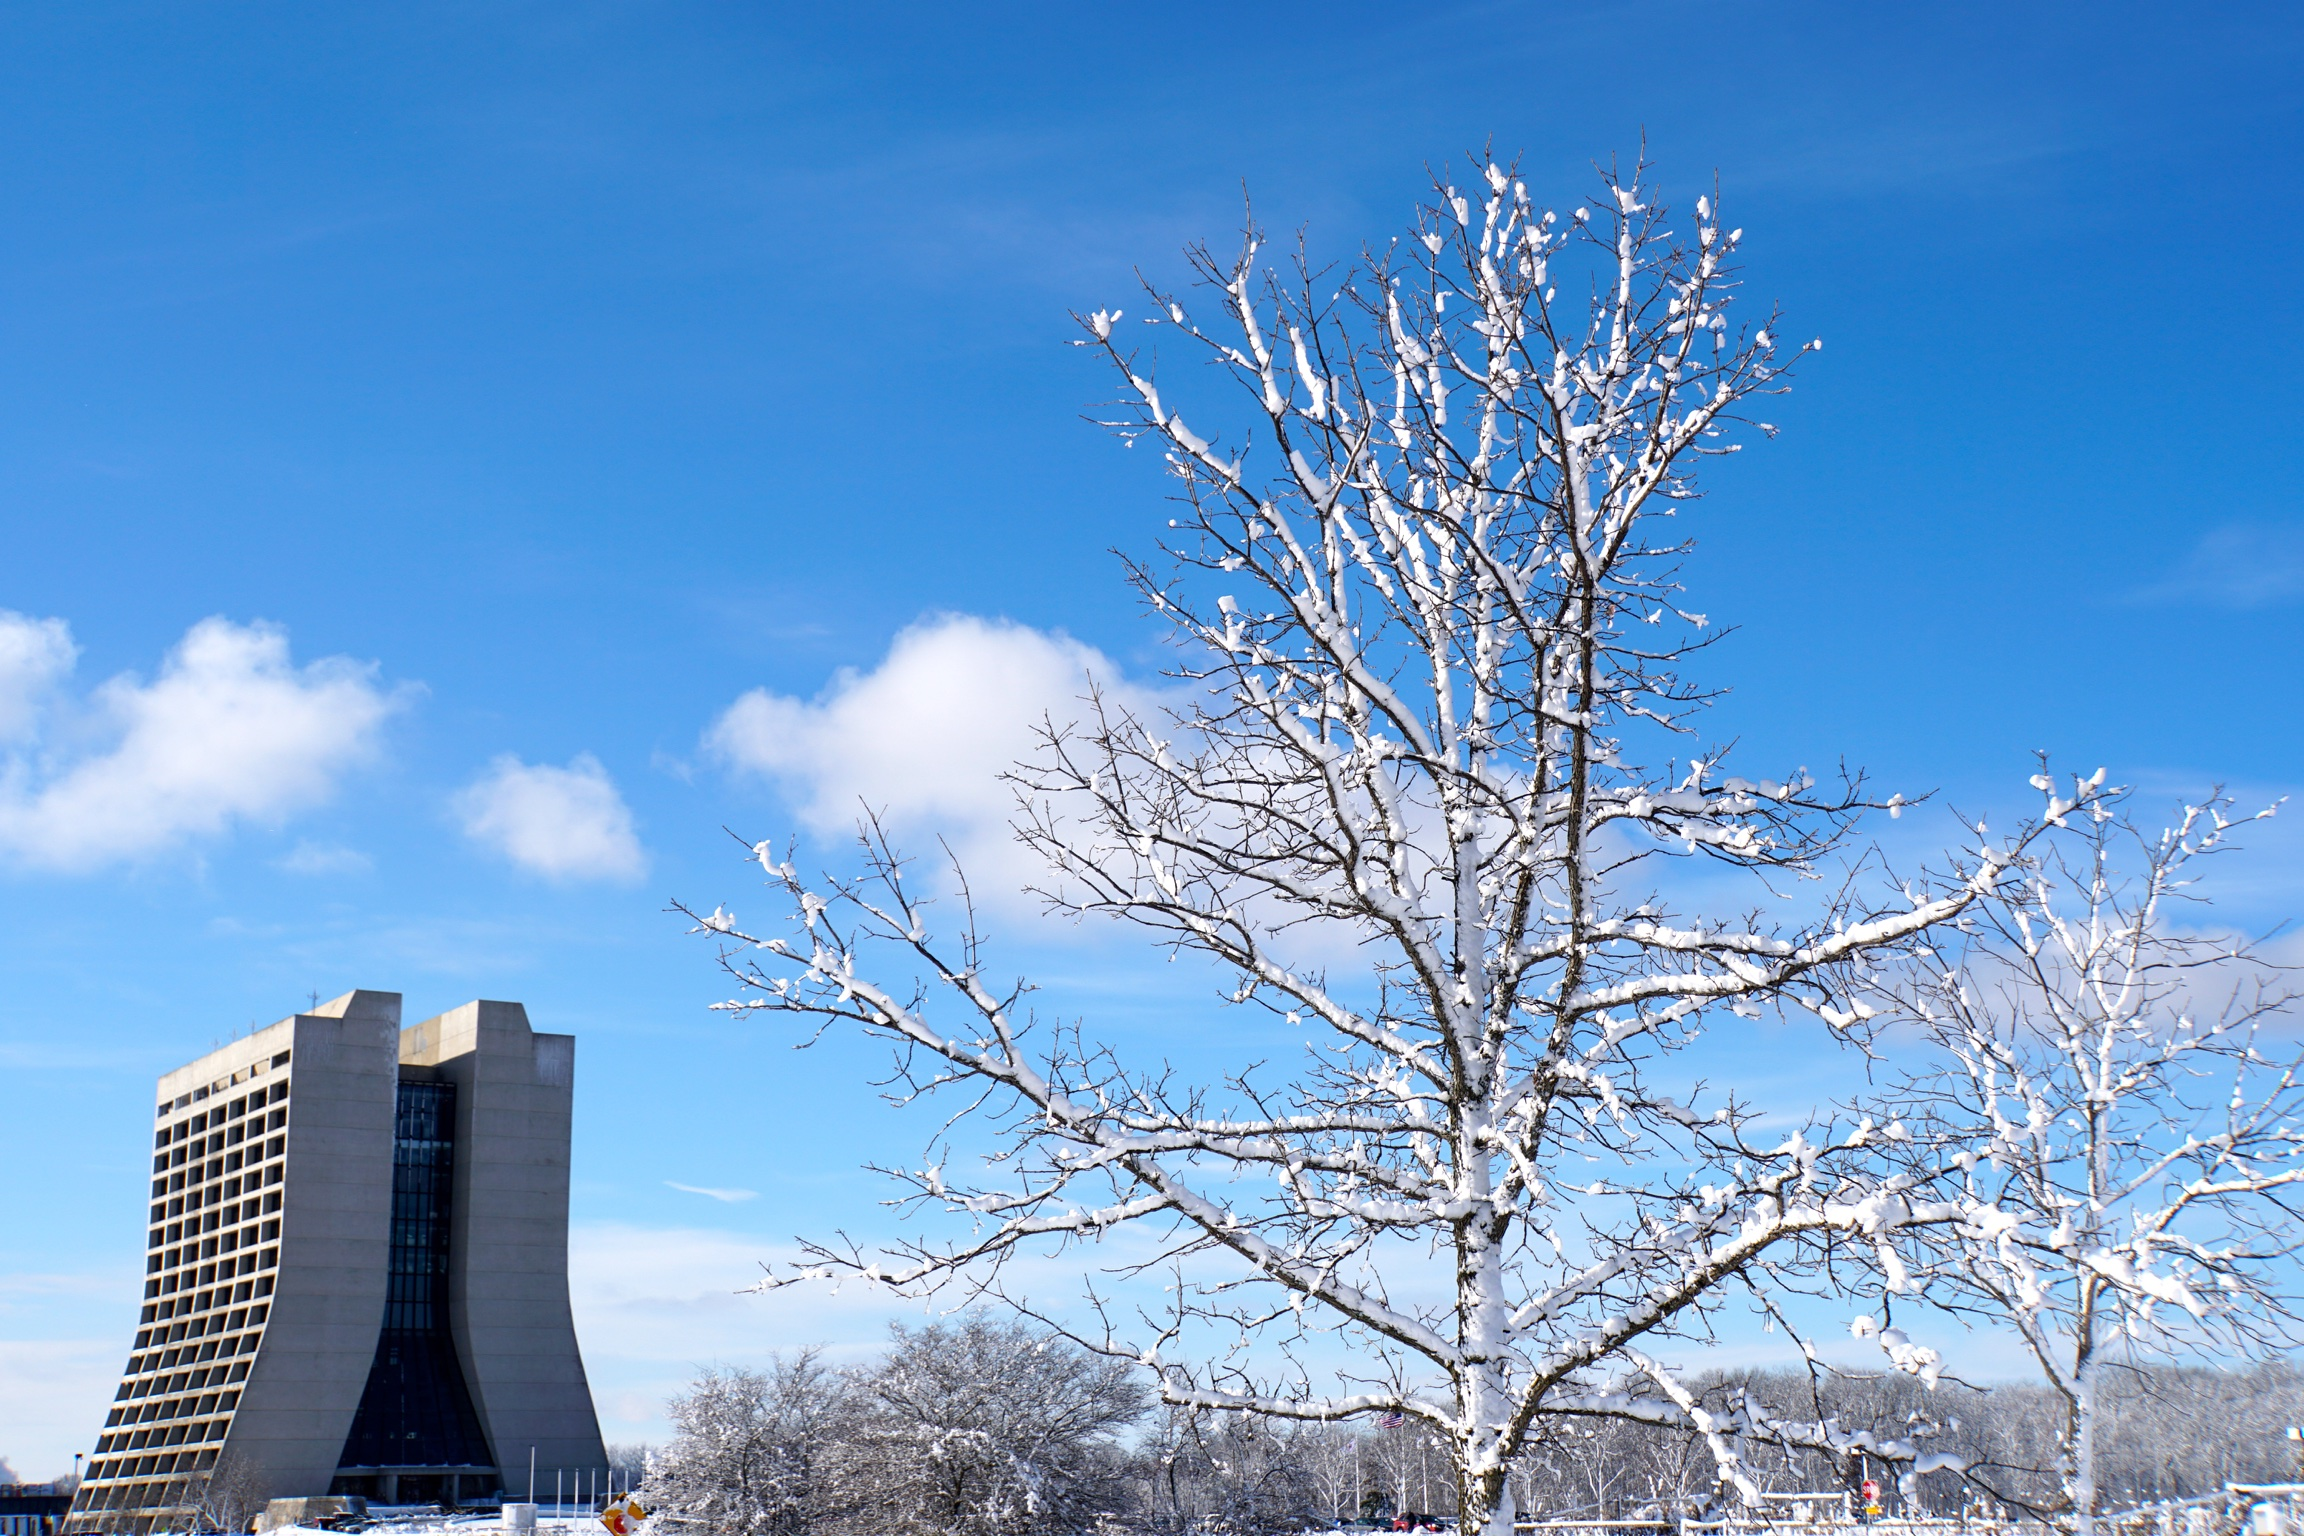 (2/3) The natural and built environment: a snowy tree in the foreground, Wilson Hall in the background. landscape, building, tree, nature, Wilson Hall, snow, sky, winter Photo: Marguerite Tonjes